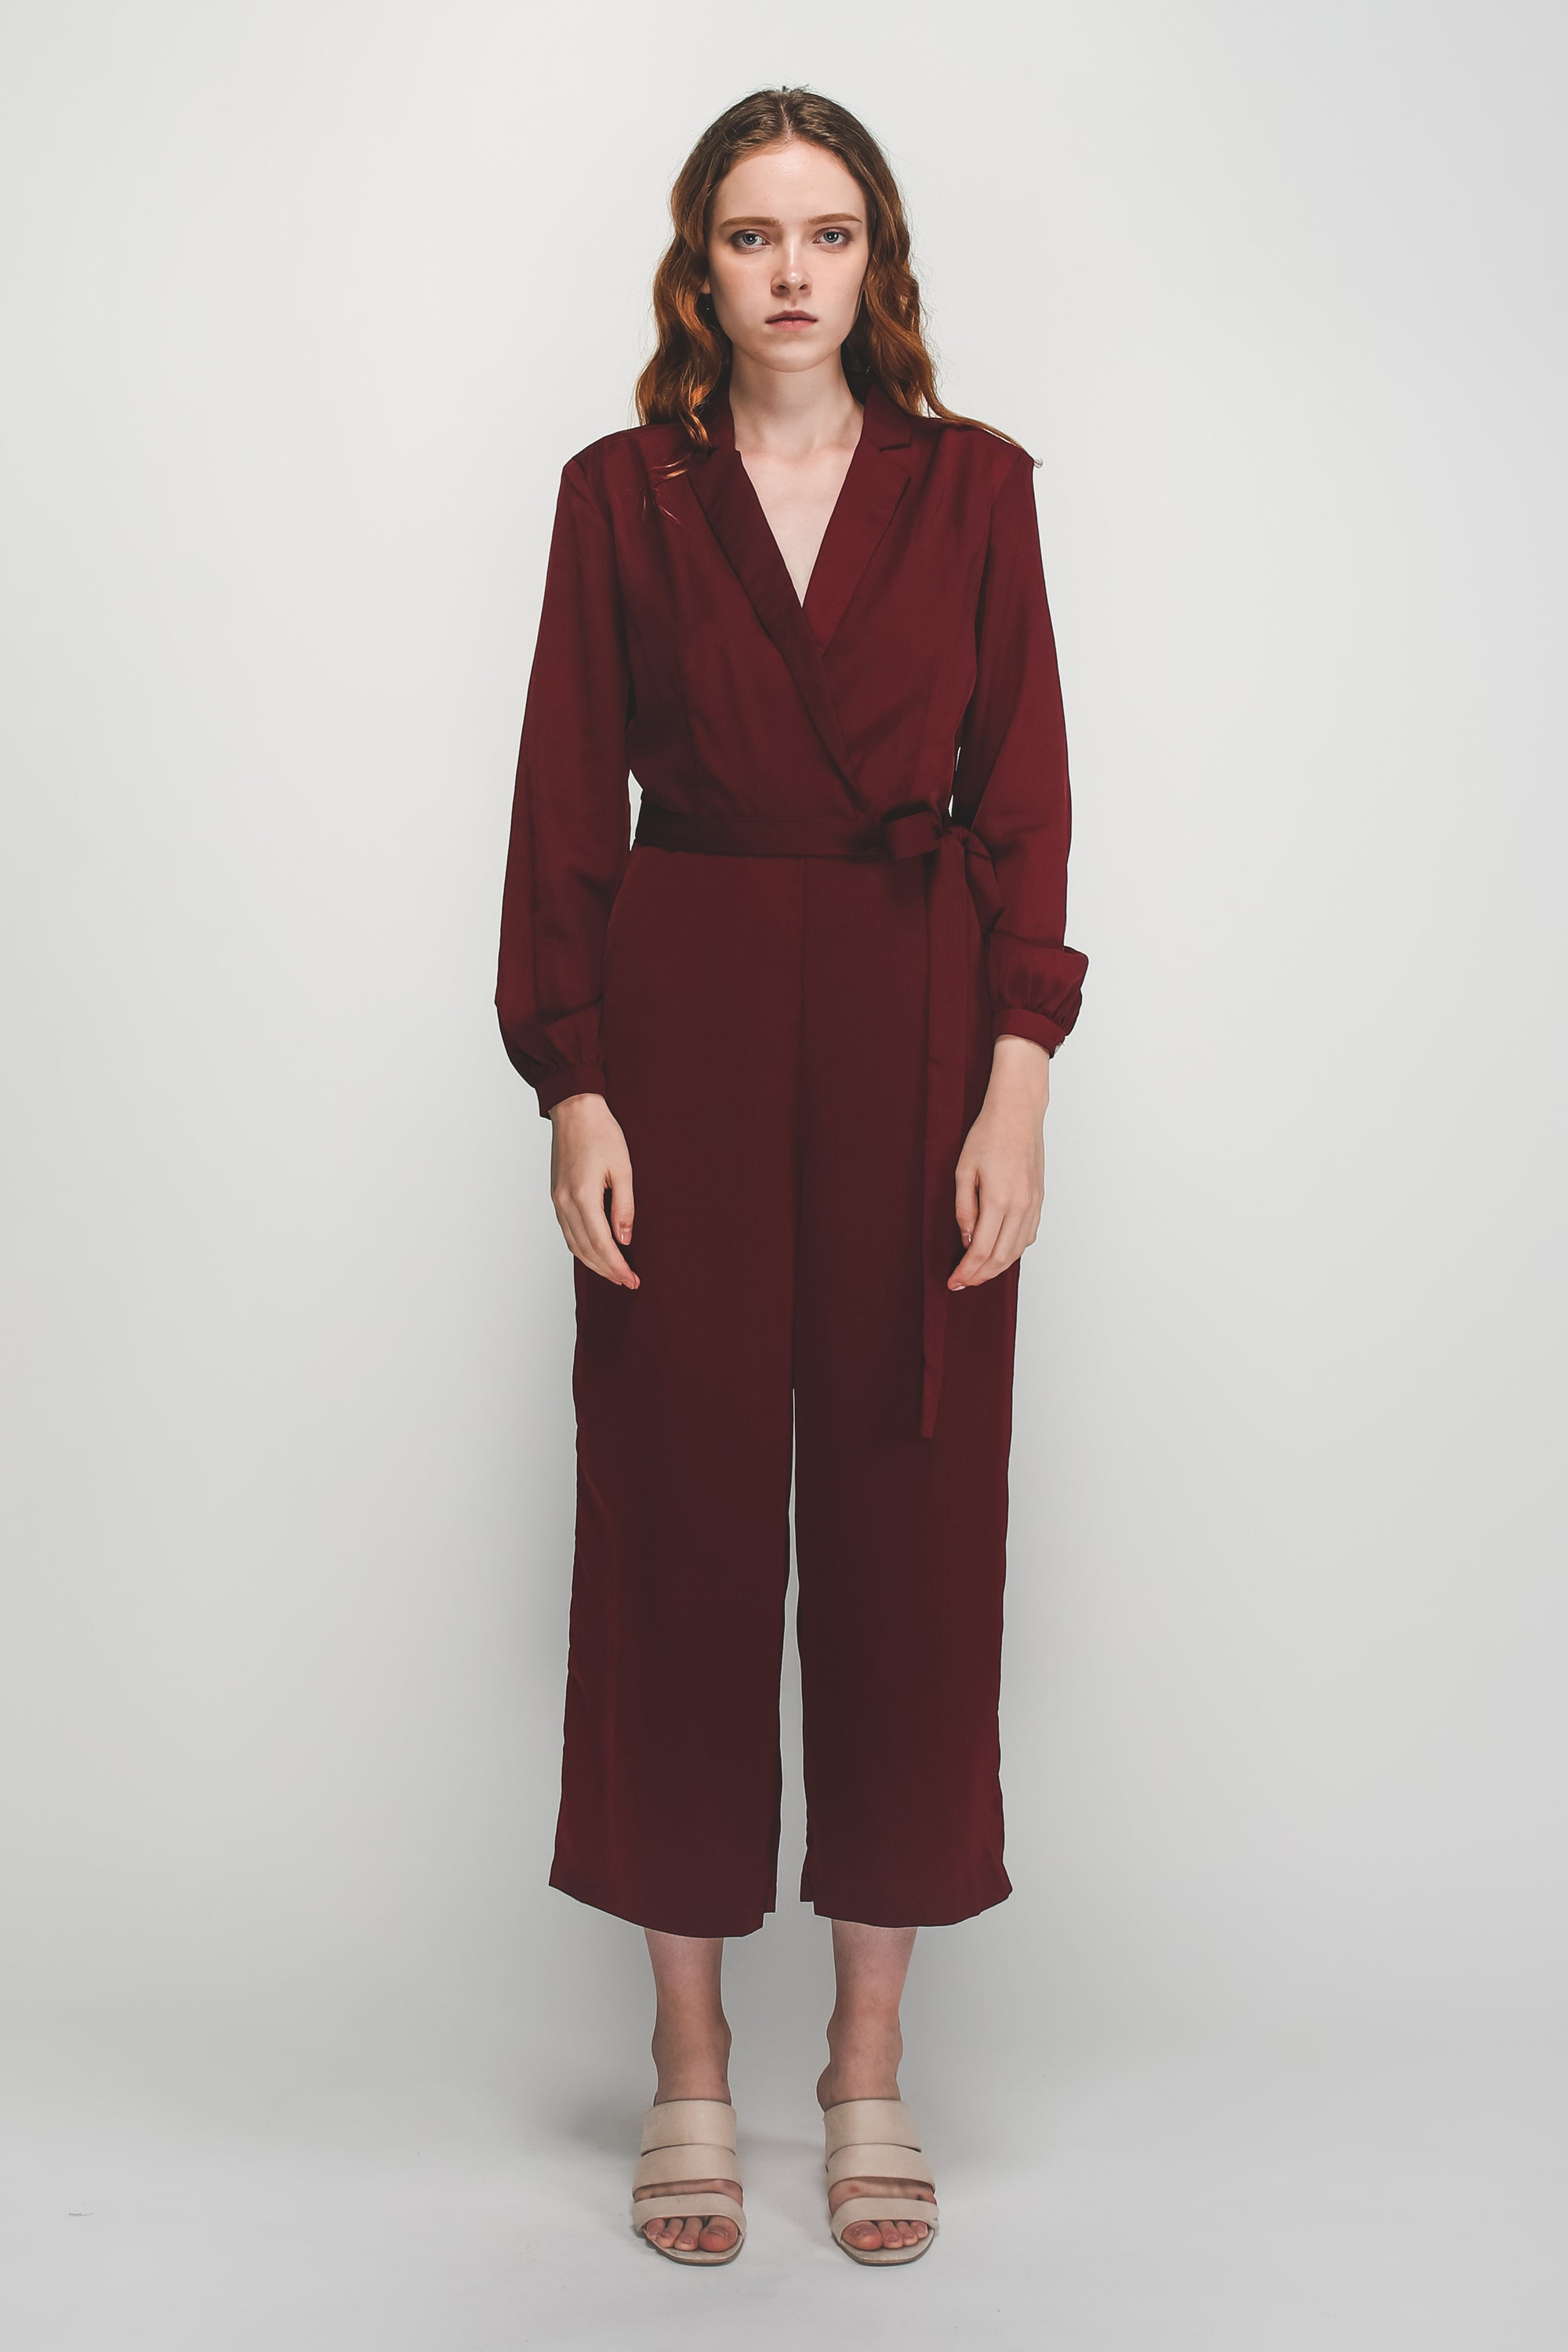 V-Neck Lapel Belted Wide Legged Jumpsuit In Maroon